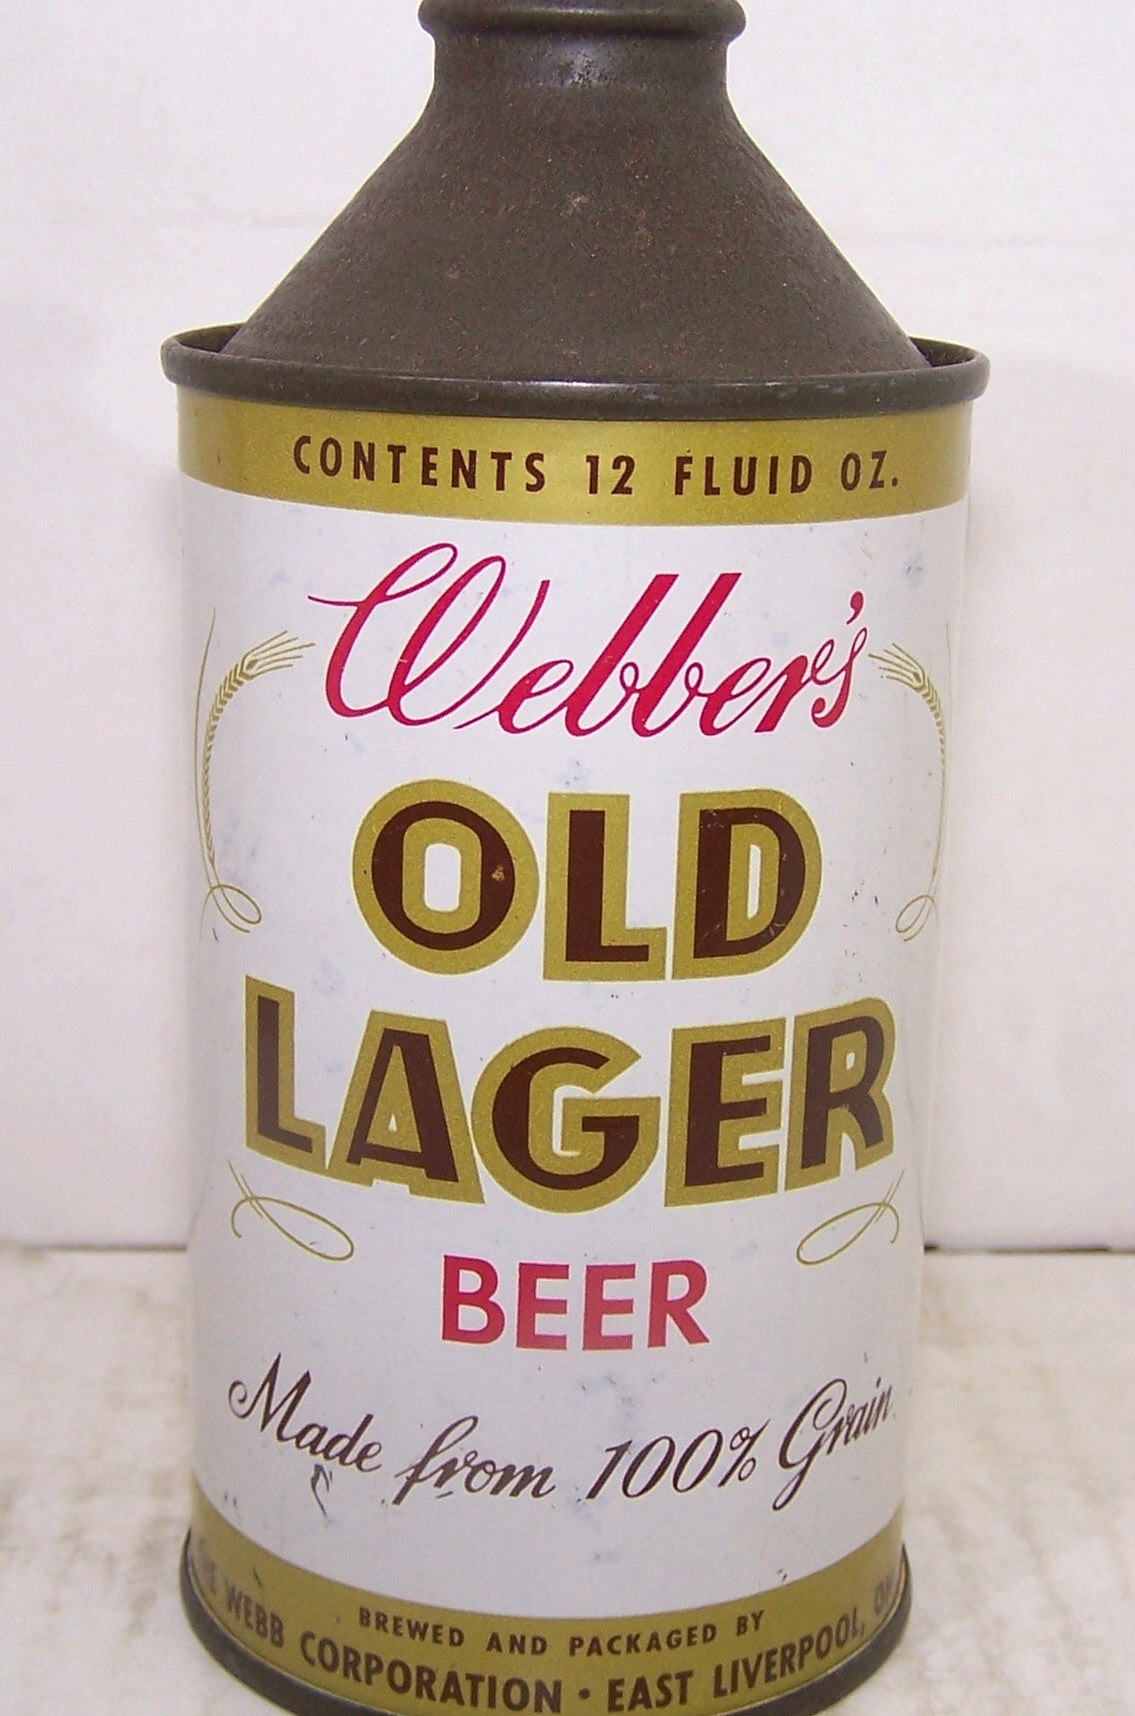 Webber's Old Lager Beer, Contains over 3.2% but less then 7% Usold 4/8/16SBC 188-26, Grade 1/1-